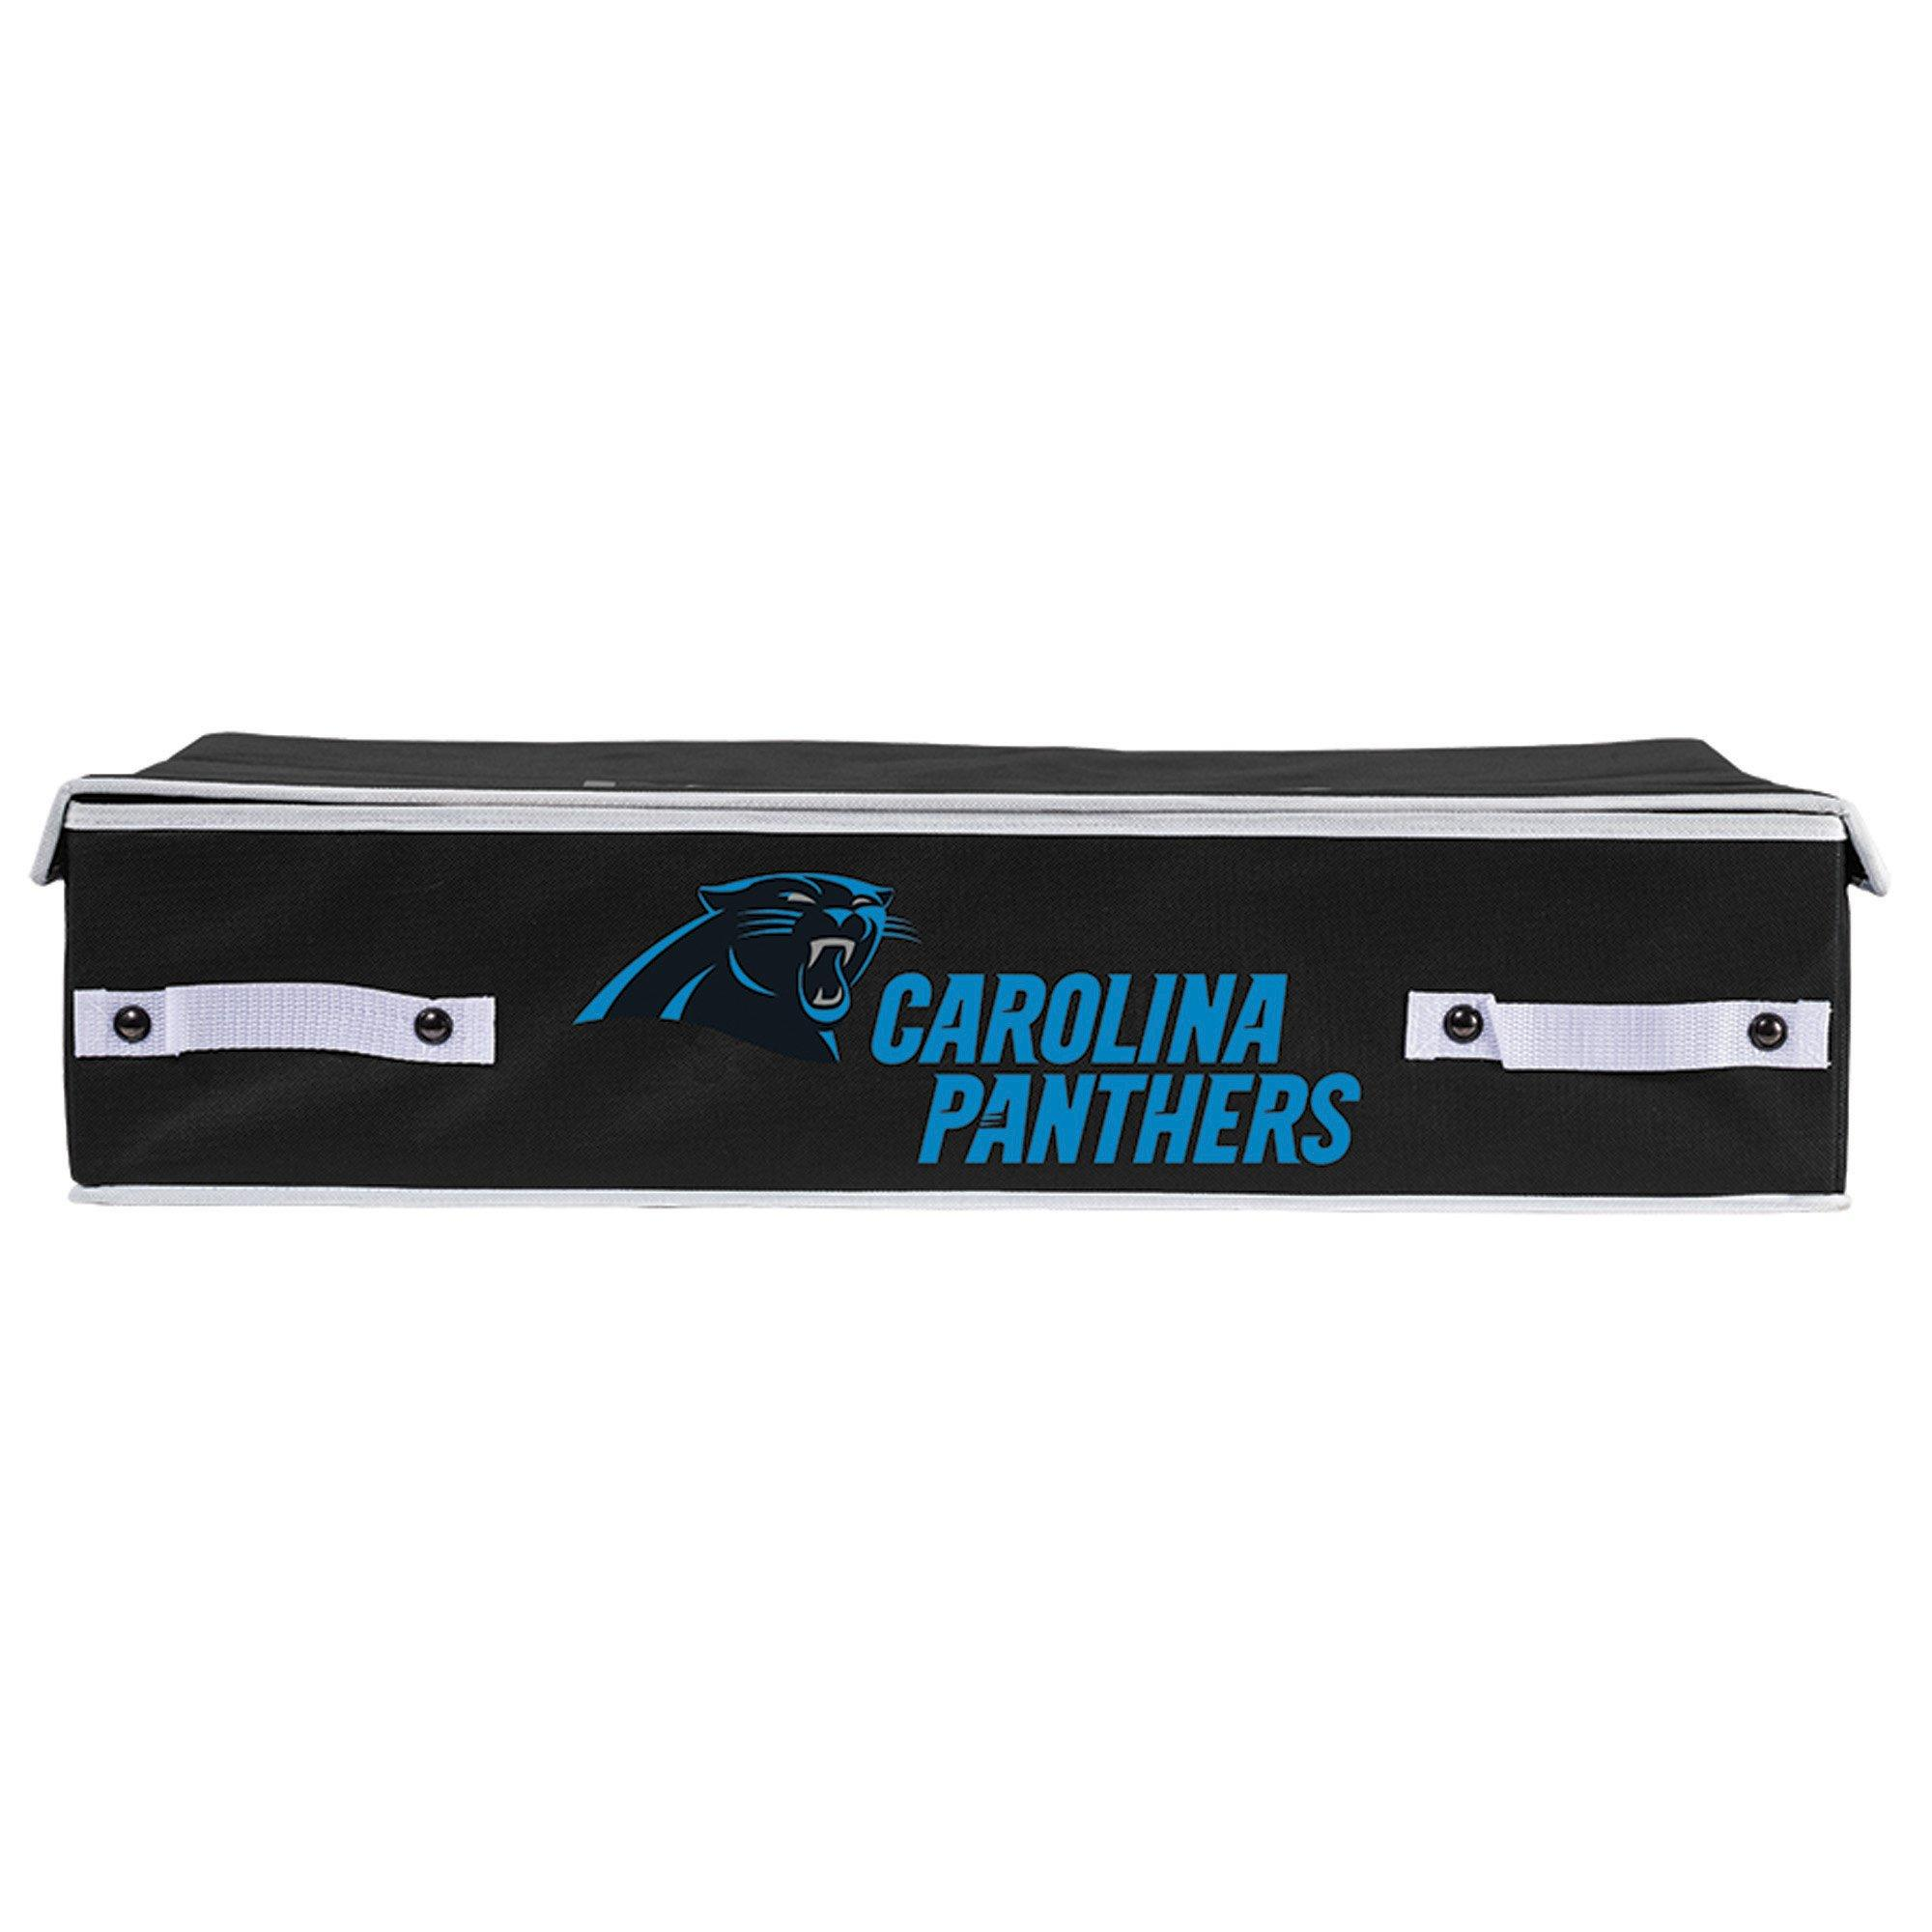 carolina panthers folding chairs chair cover rentals boston sale price 40 00 see in bag no rating value 0 franklin large under the